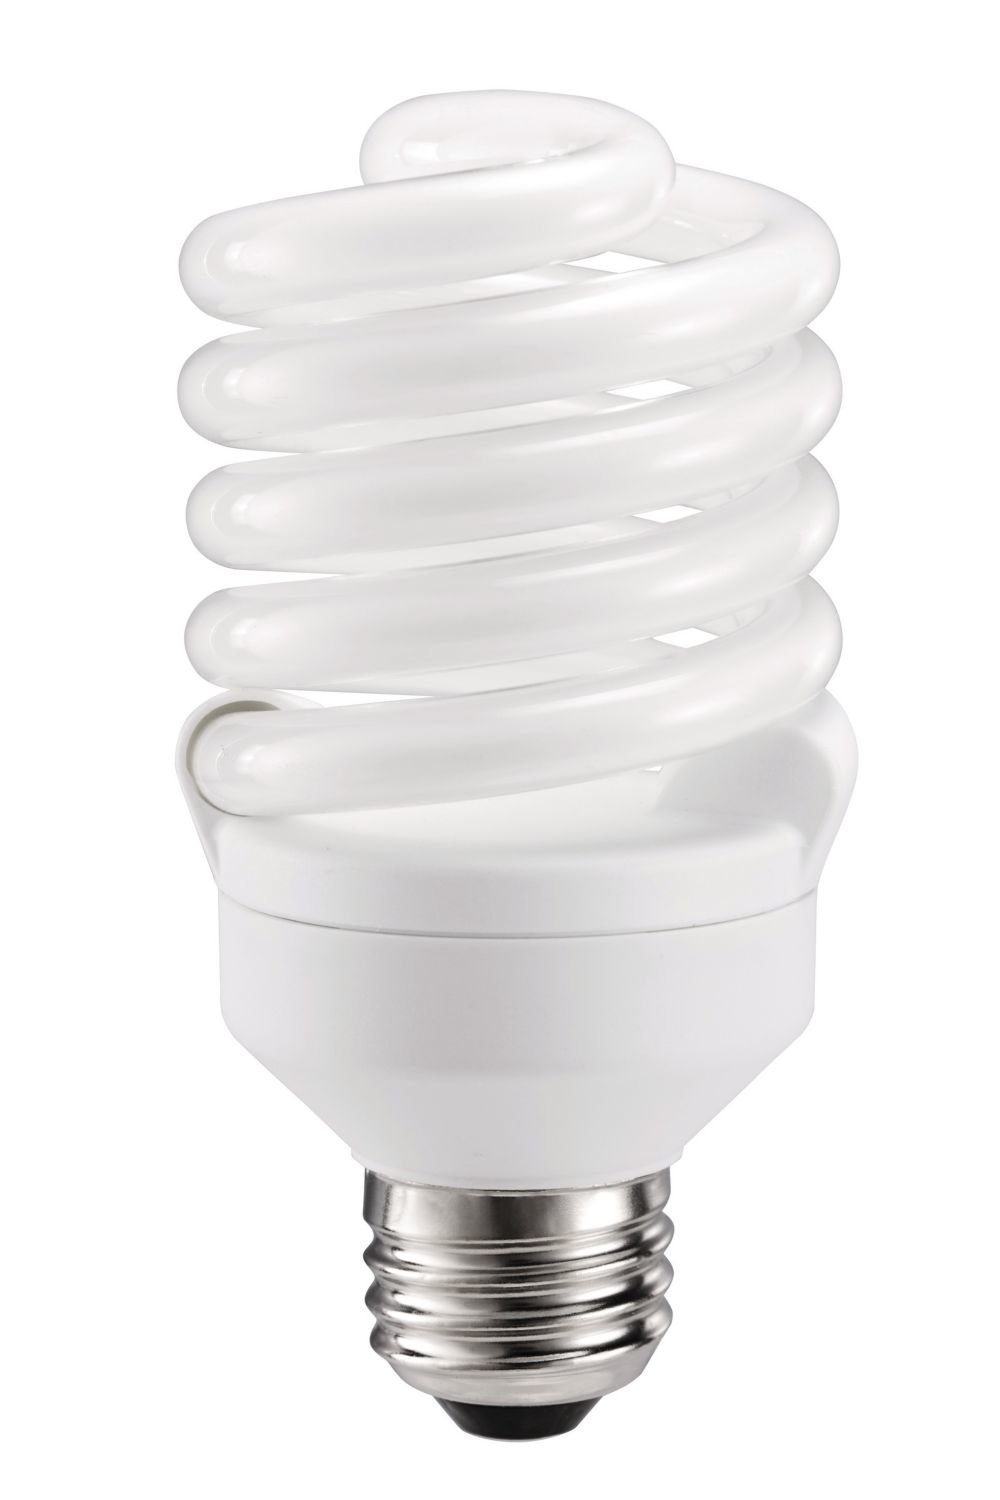 Philips 417097 Energy Saver Soft White CFL Light Bulb